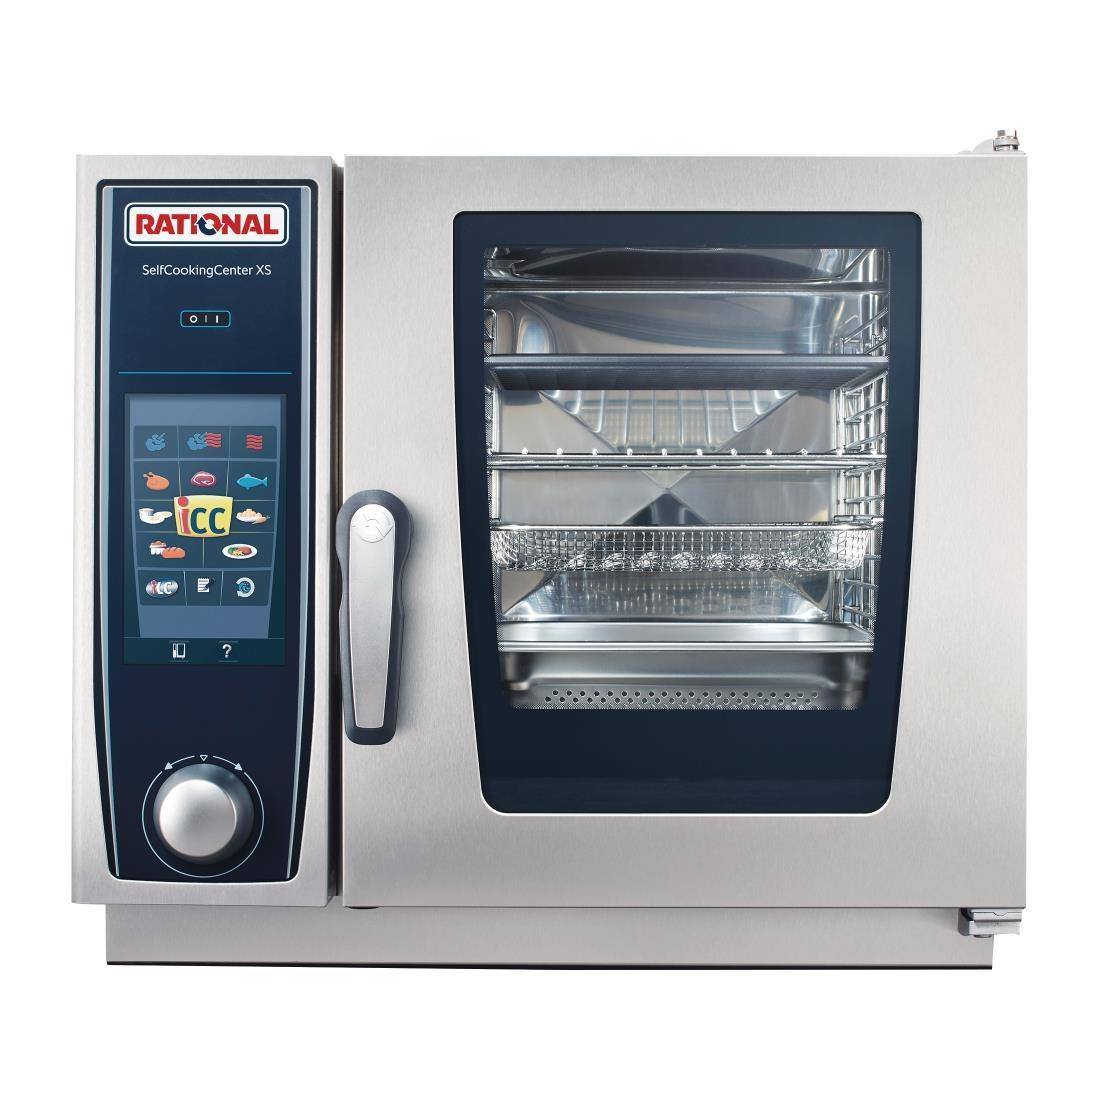 CN984 - SelfCooking Center XS with integrated fresh steam generator (Direct)